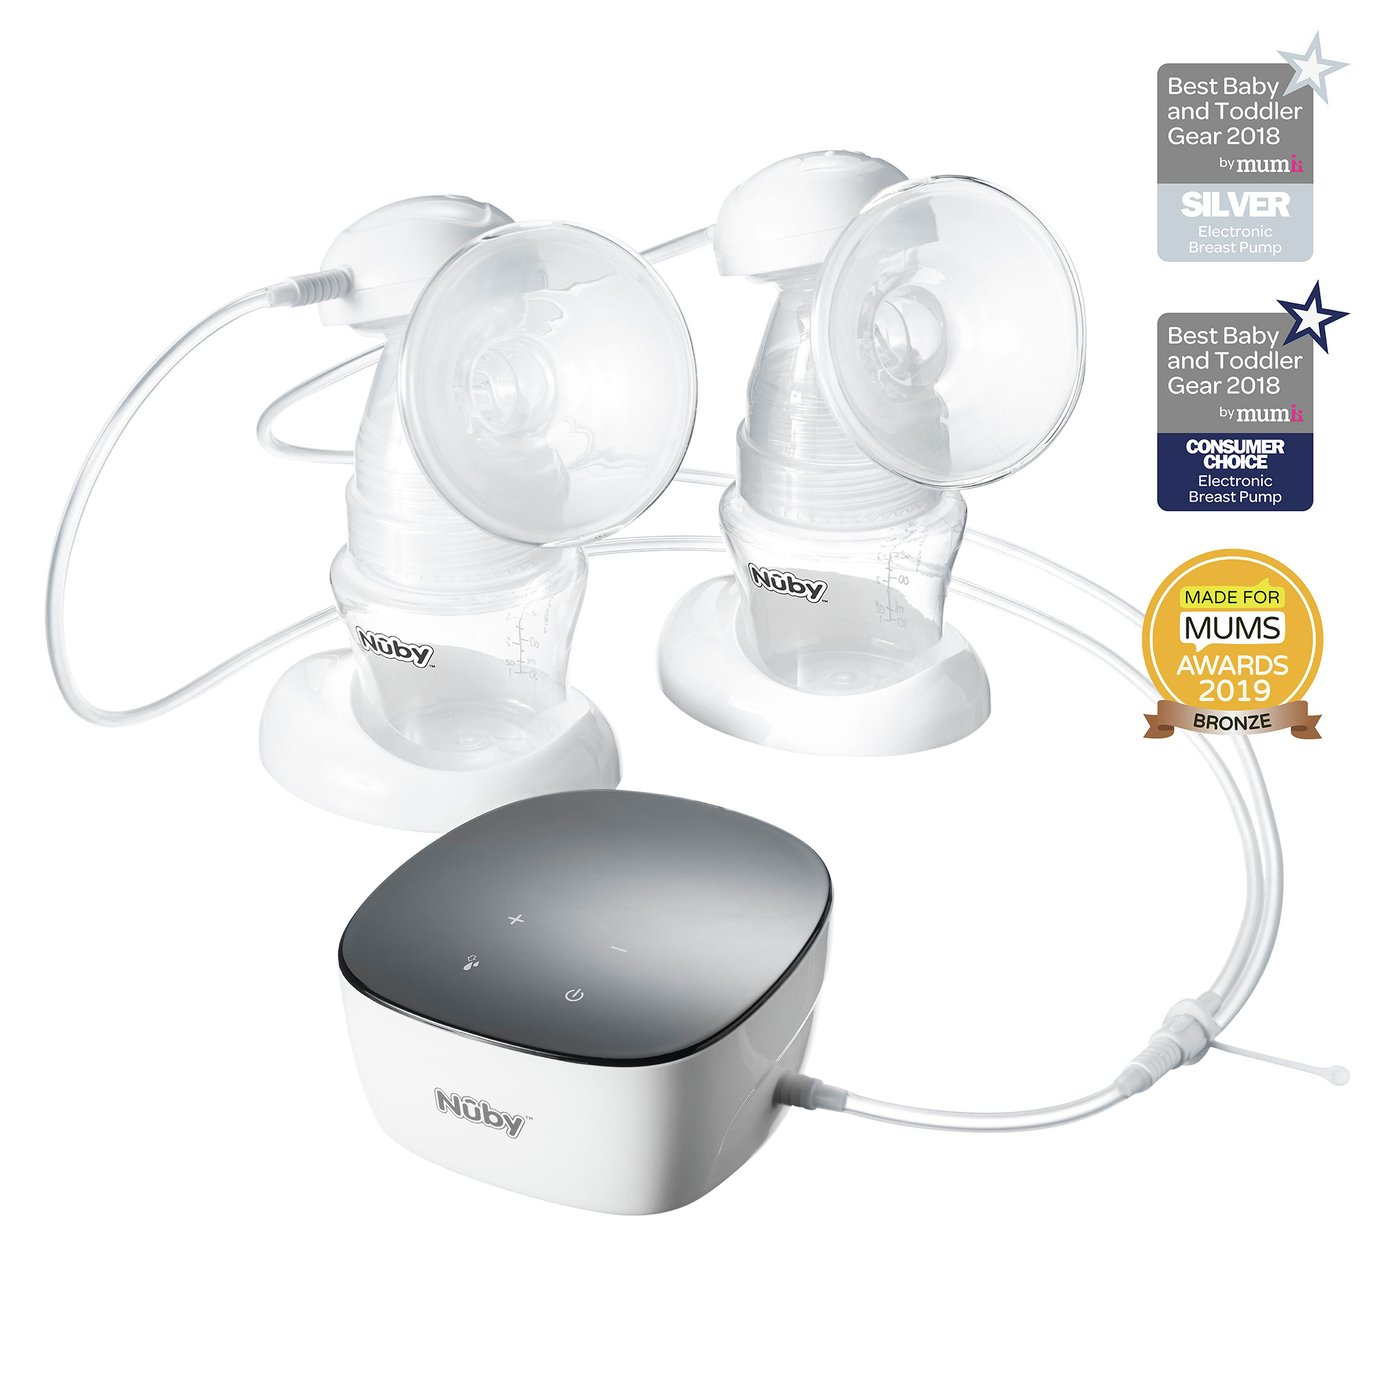 Nuby Ultimate Double Breast Pump